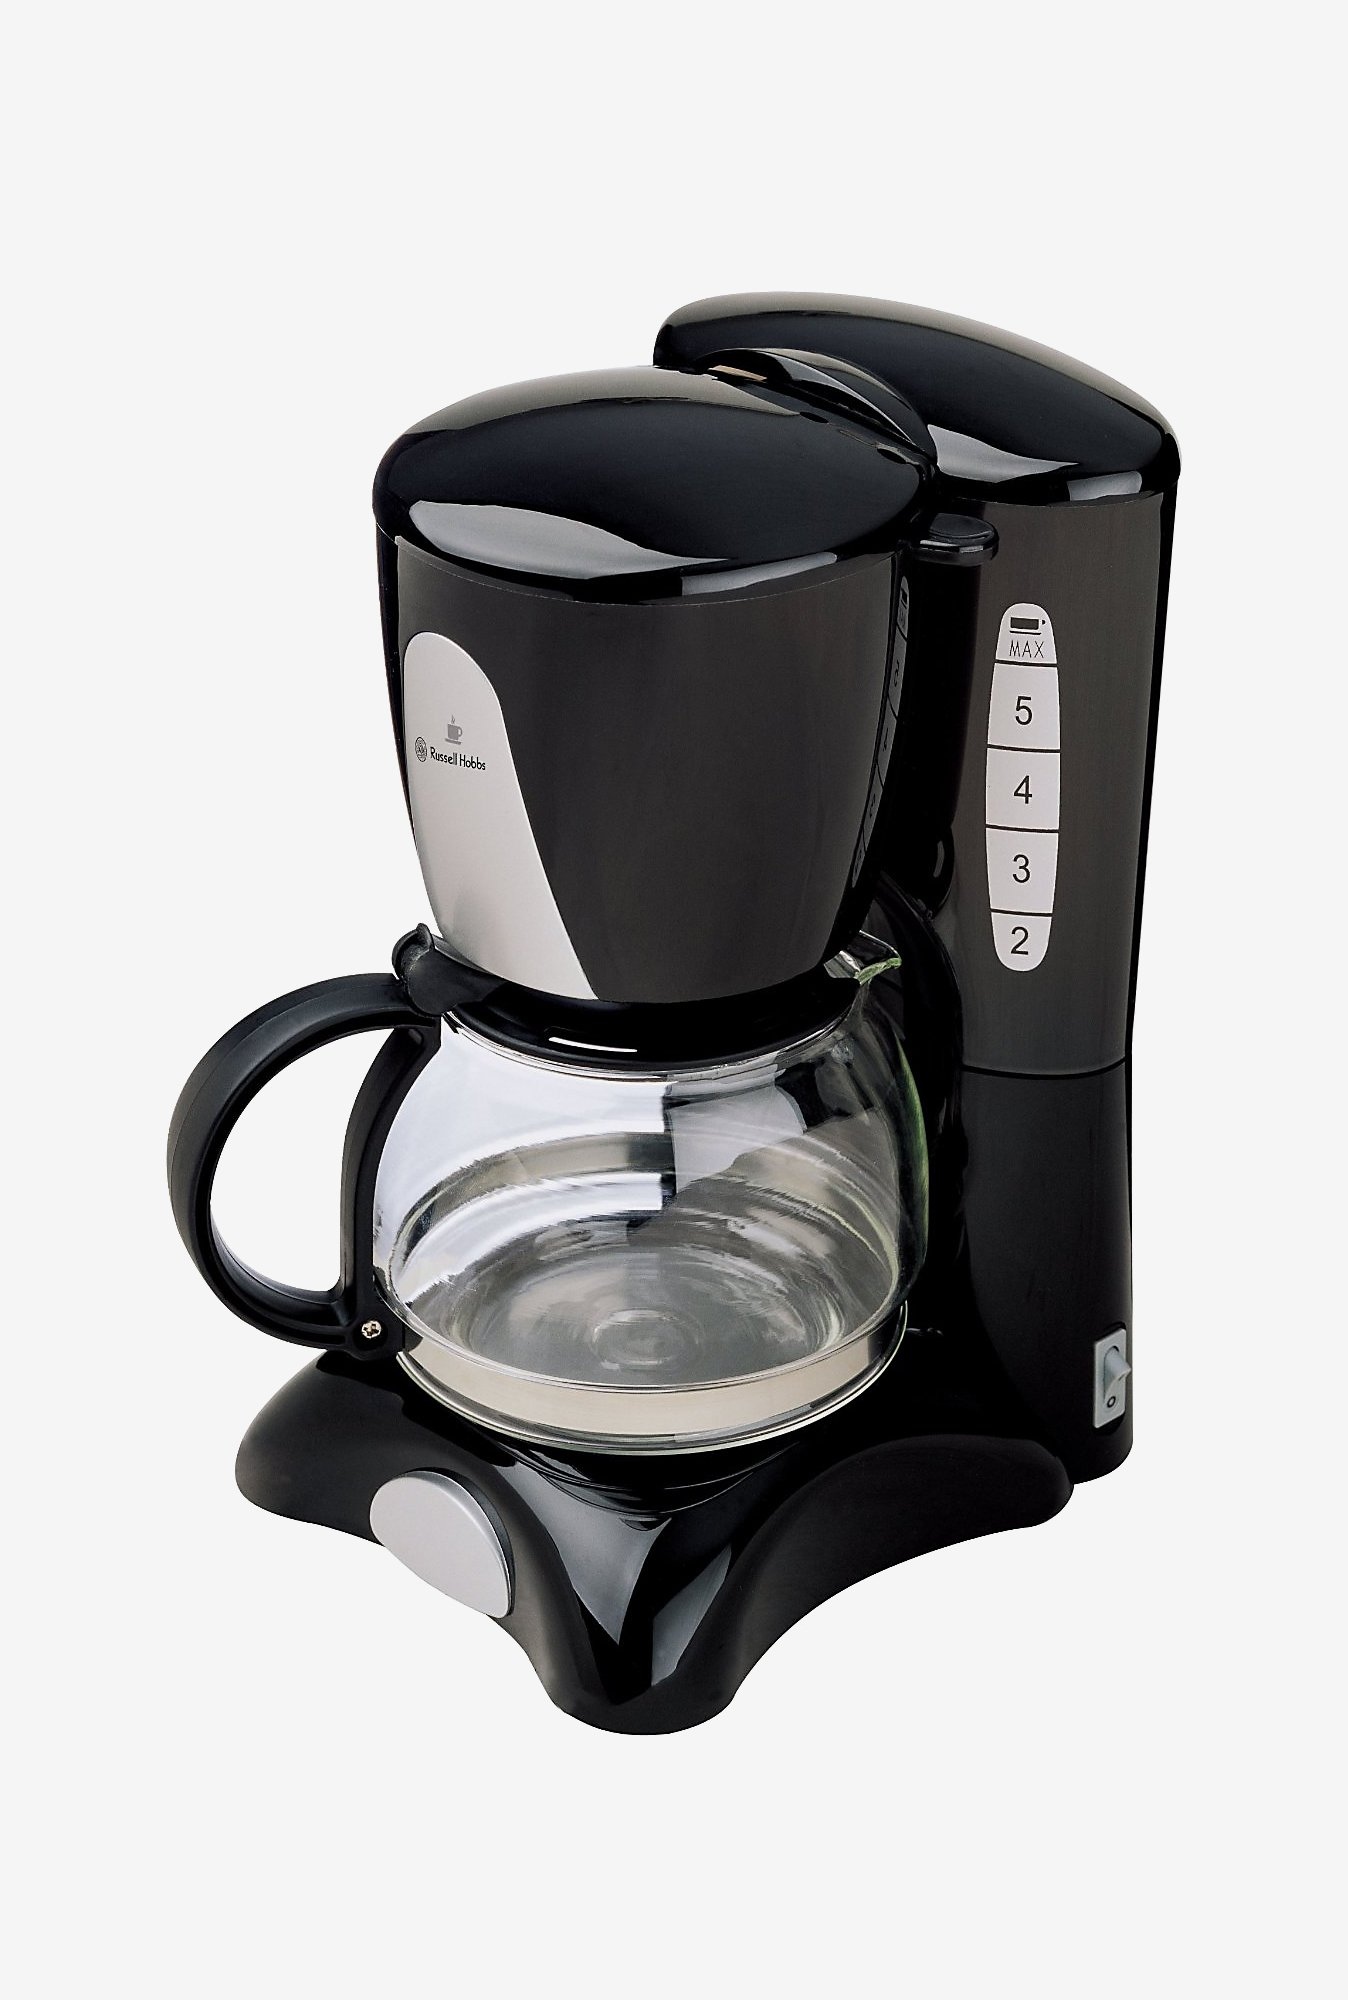 Russell Hobbs RCM60 Coffee Maker with 6 Cup Capacity (Black)